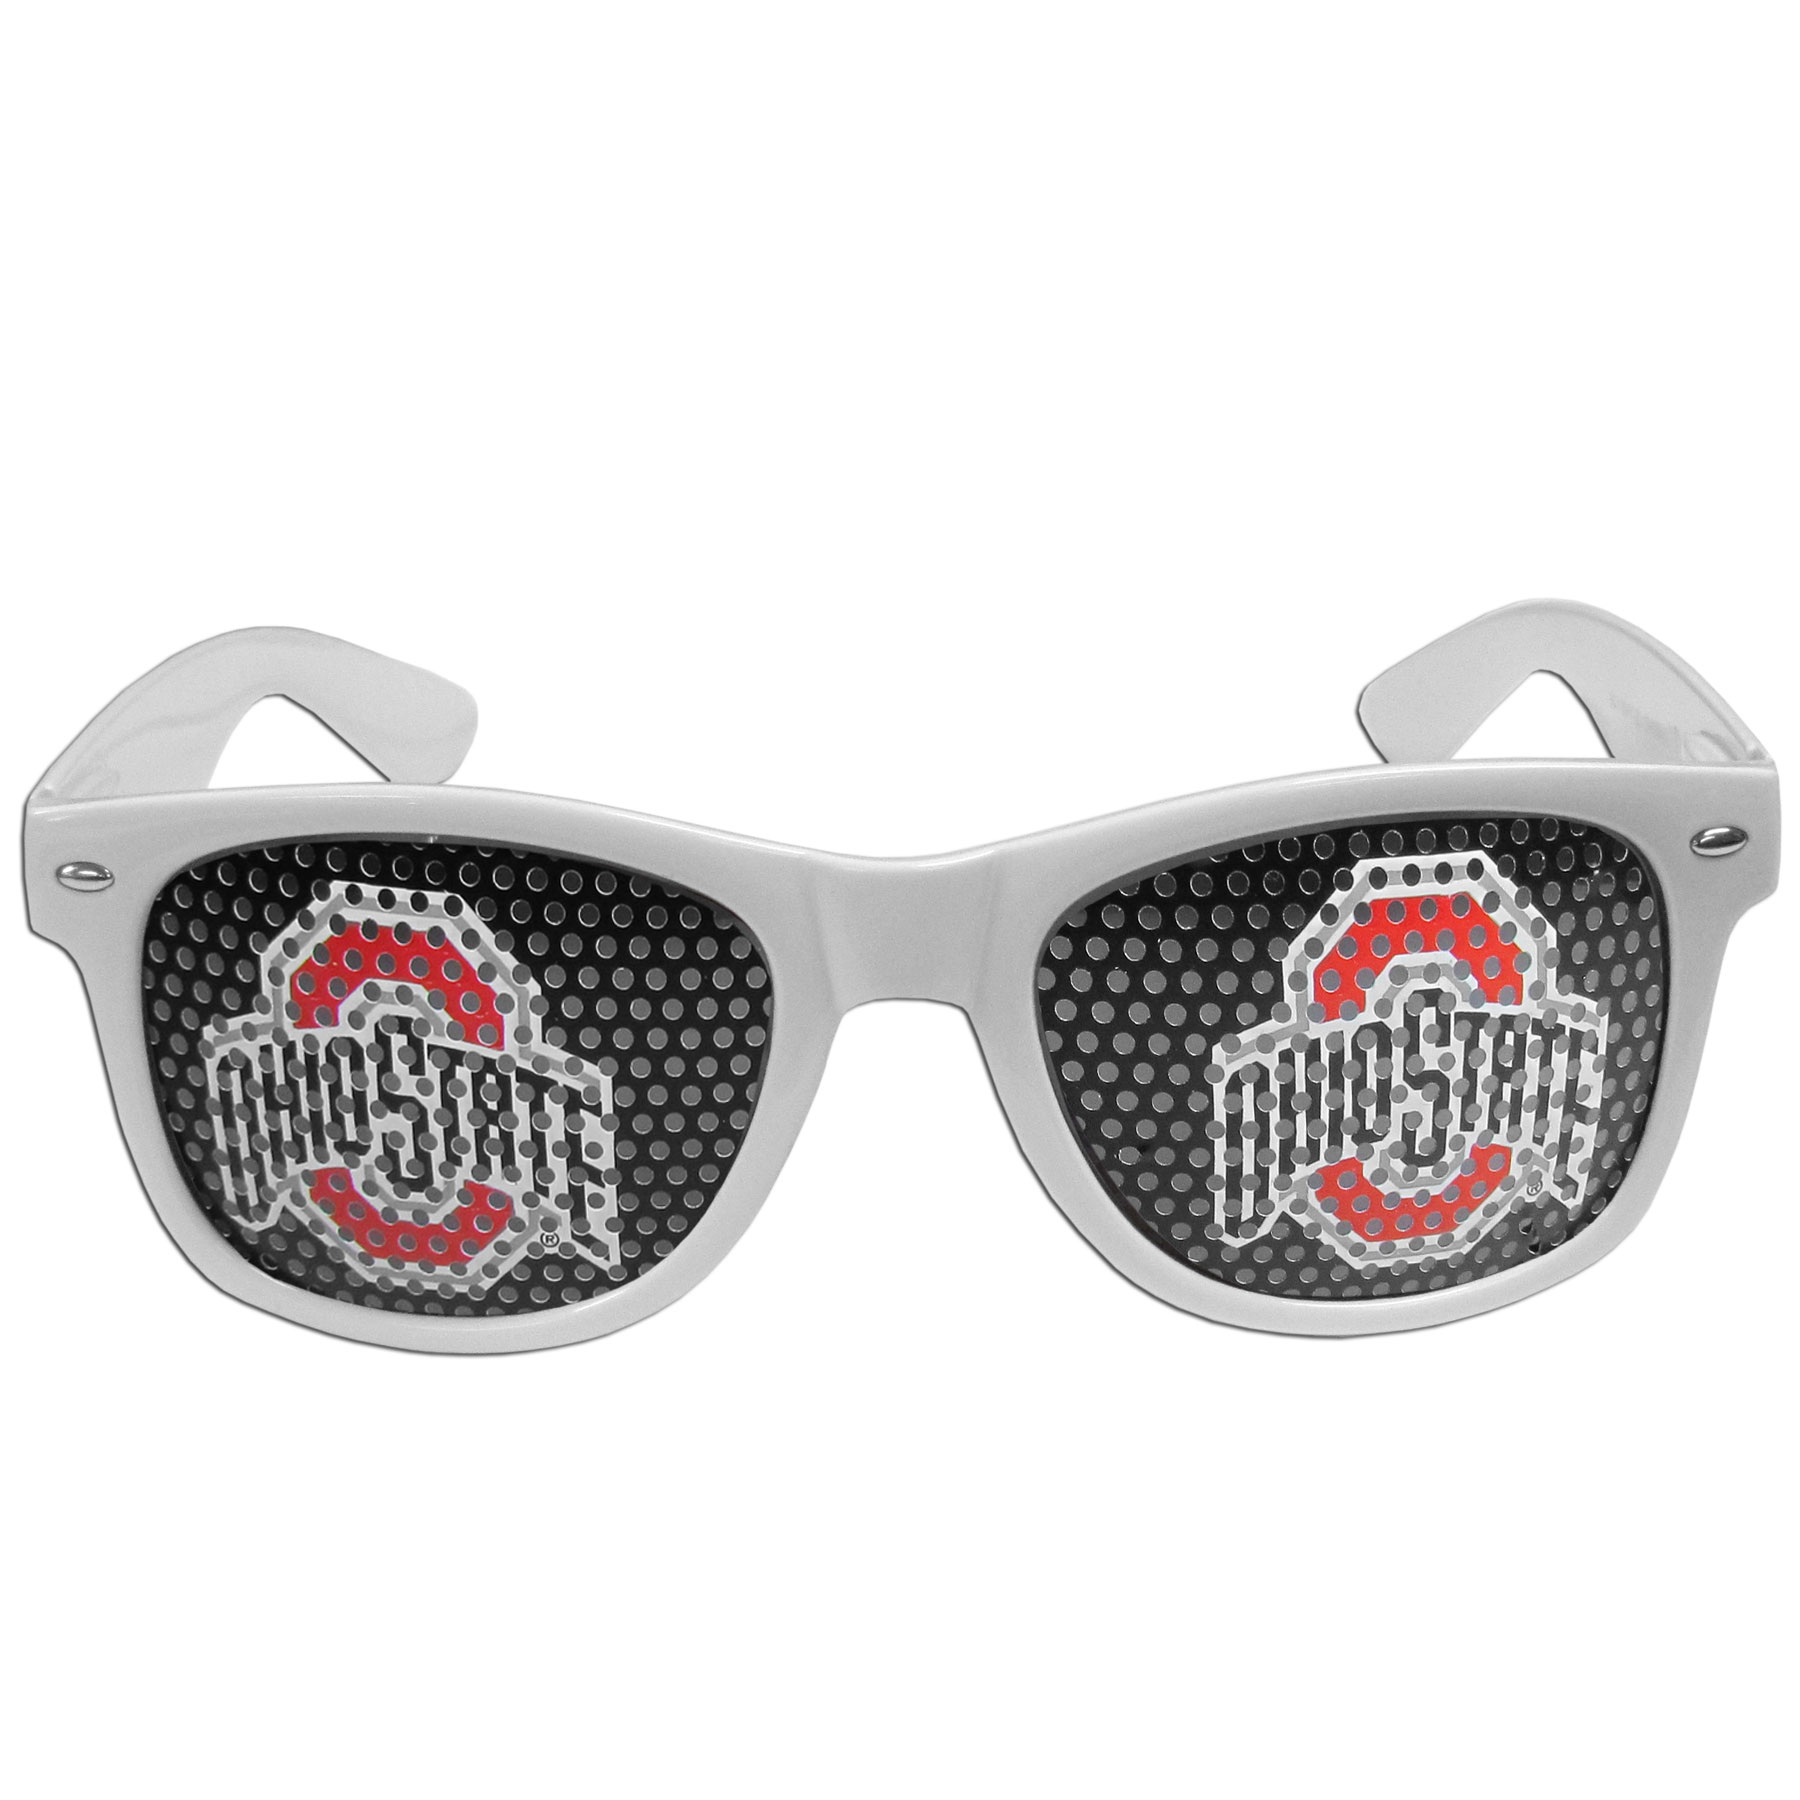 Ohio St. Buckeyes Game Day Shades - Our officially licensed game day shades are the perfect accessory for the devoted Ohio St. Buckeyes fan! The sunglasses have durable polycarbonate frames with flex hinges for comfort and damage resistance. The lenses feature brightly colored team clings that are perforated for visibility.